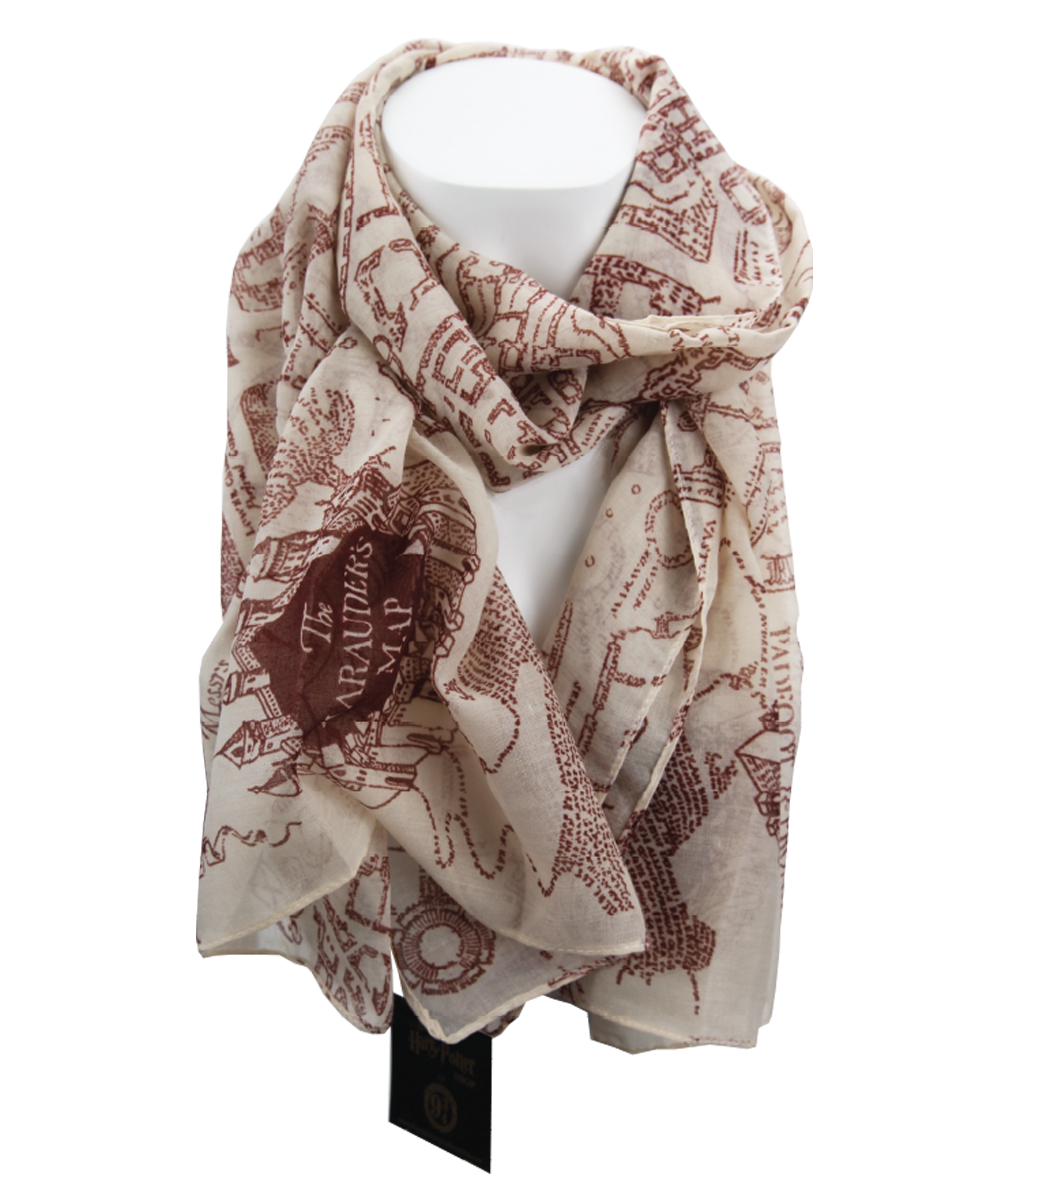 Harry potter merchandise harry potter shop at platform 9 34 the marauders map scarf gumiabroncs Choice Image